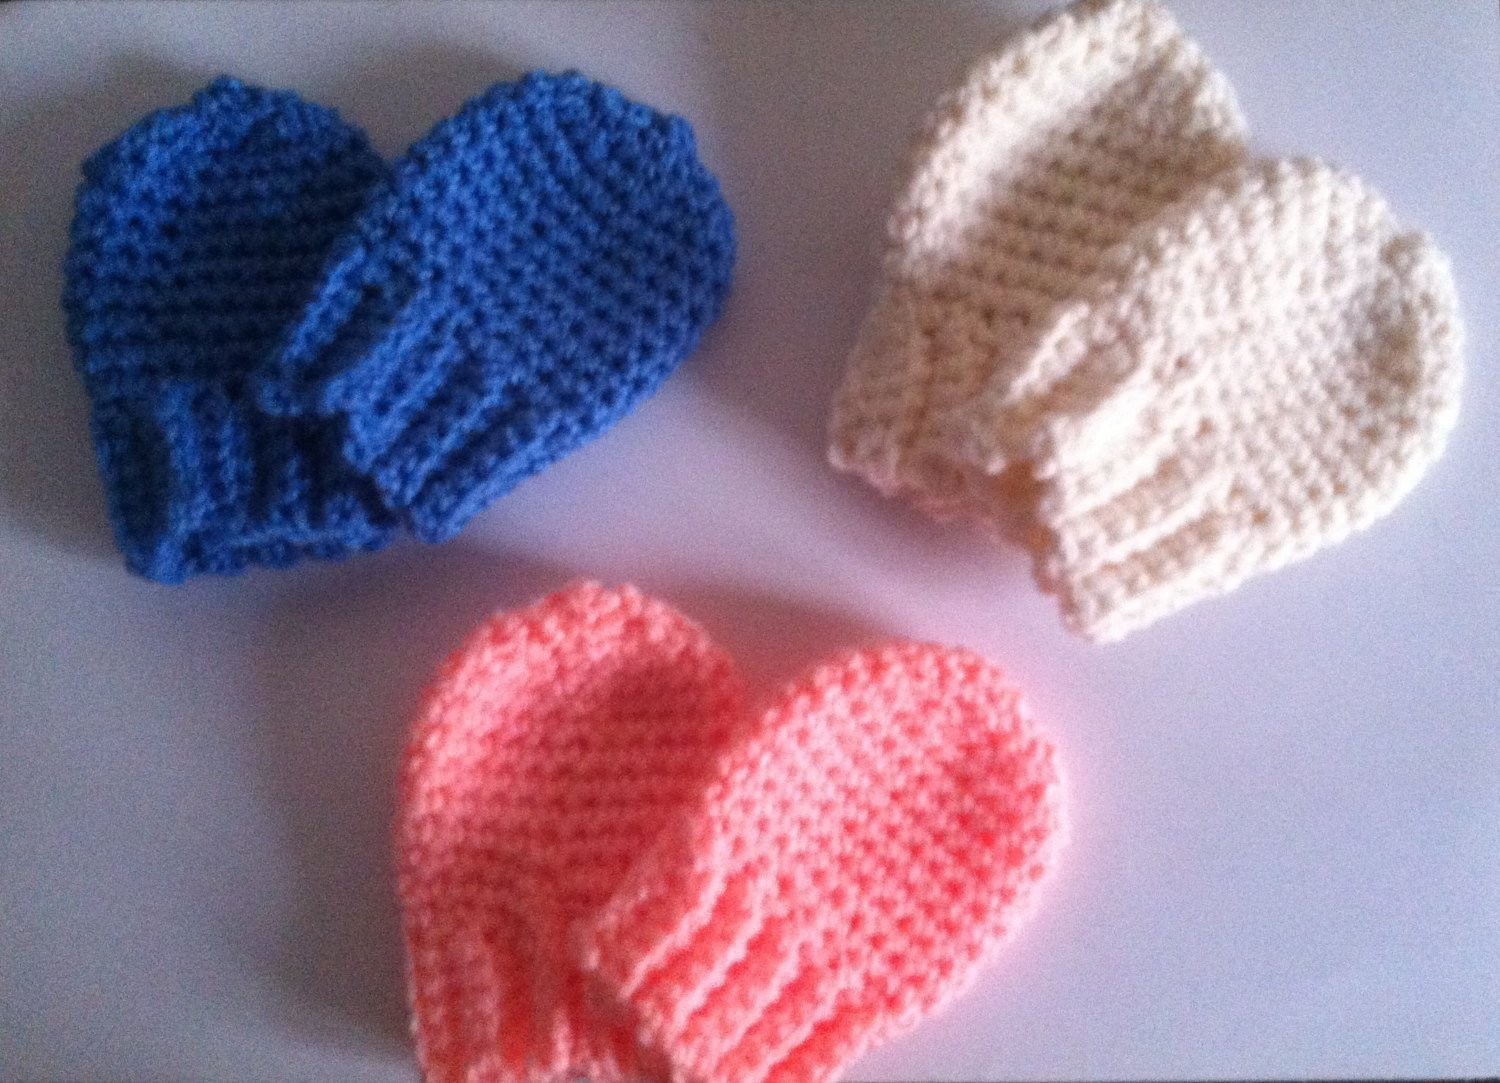 Fresh Baby Mittens Newborn Mittens Crochet Mittens Thumbless Crochet Baby Mittens Of Incredible 49 Photos Crochet Baby Mittens